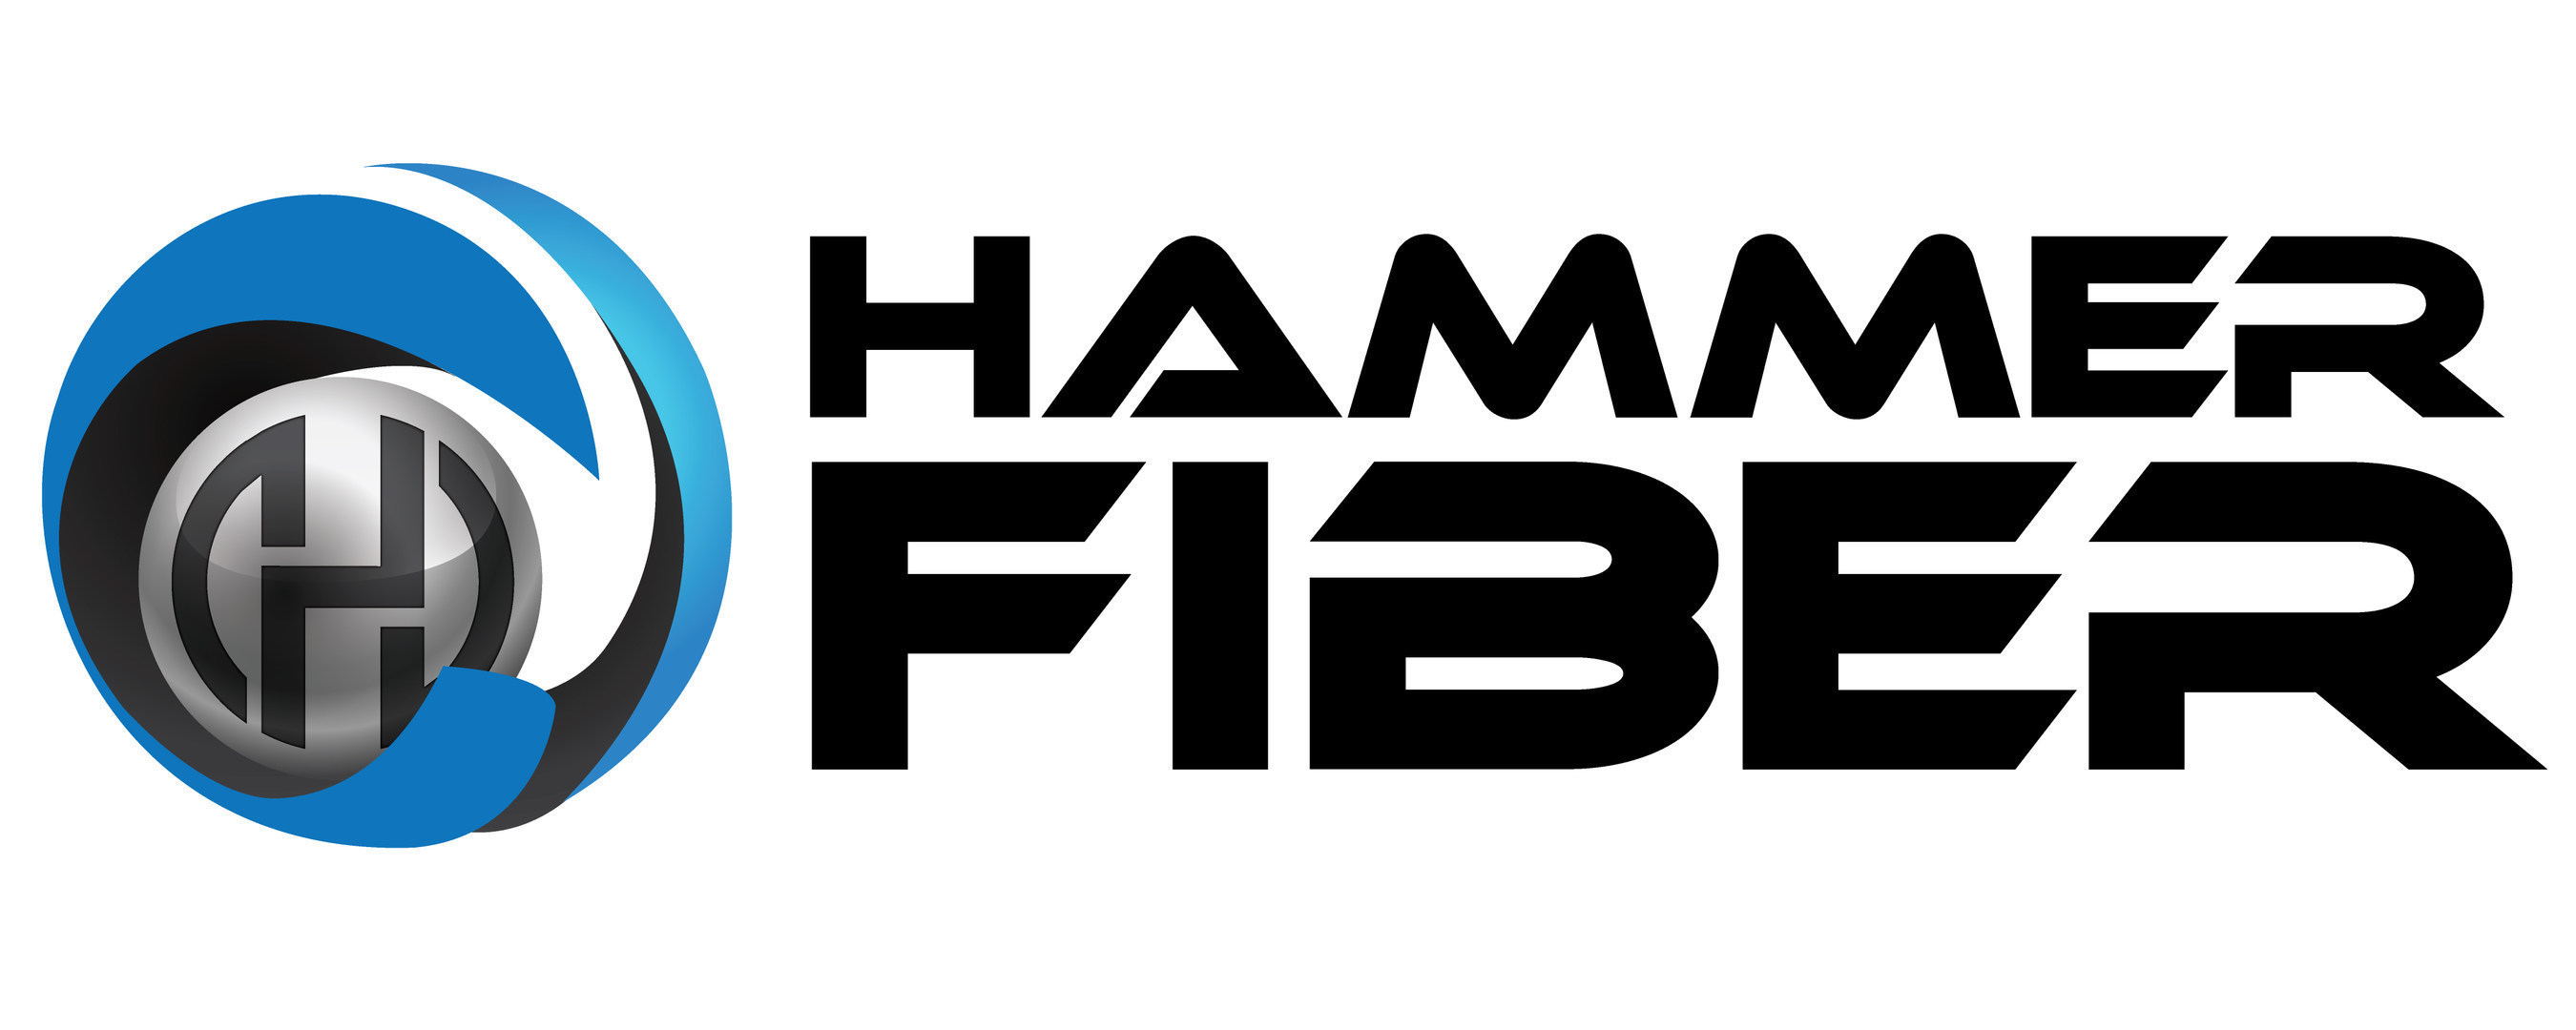 CEOCFO Magazine Interviews Mark Stogdill, CEO of Hammer Fiber